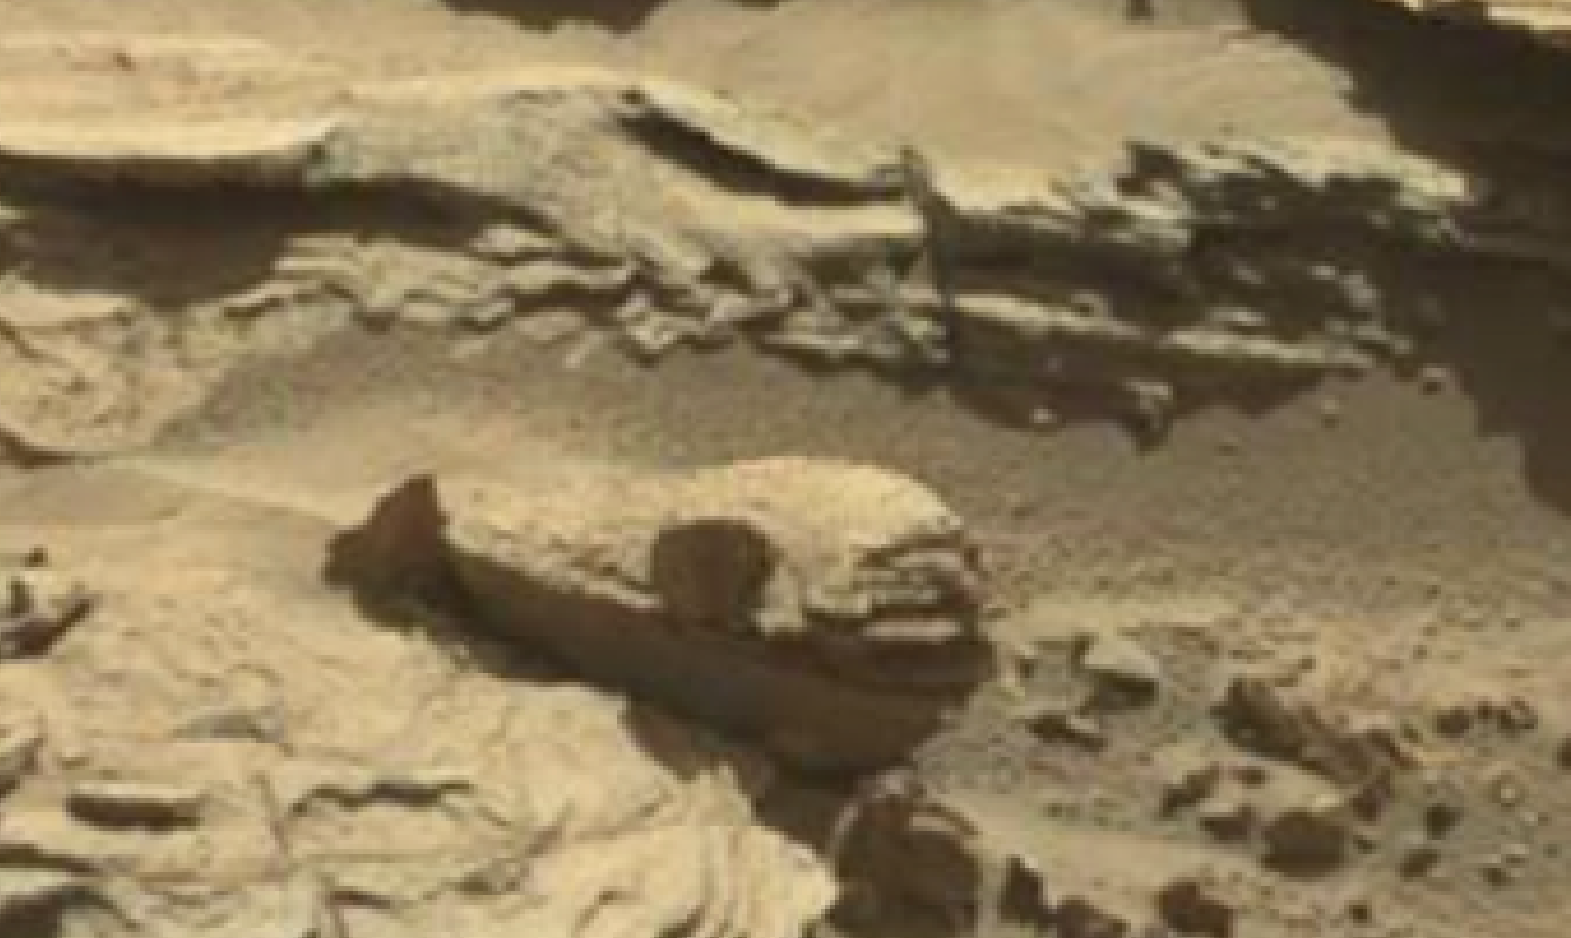 mars sol 1298 anomaly-artifacts 1 was life on mars